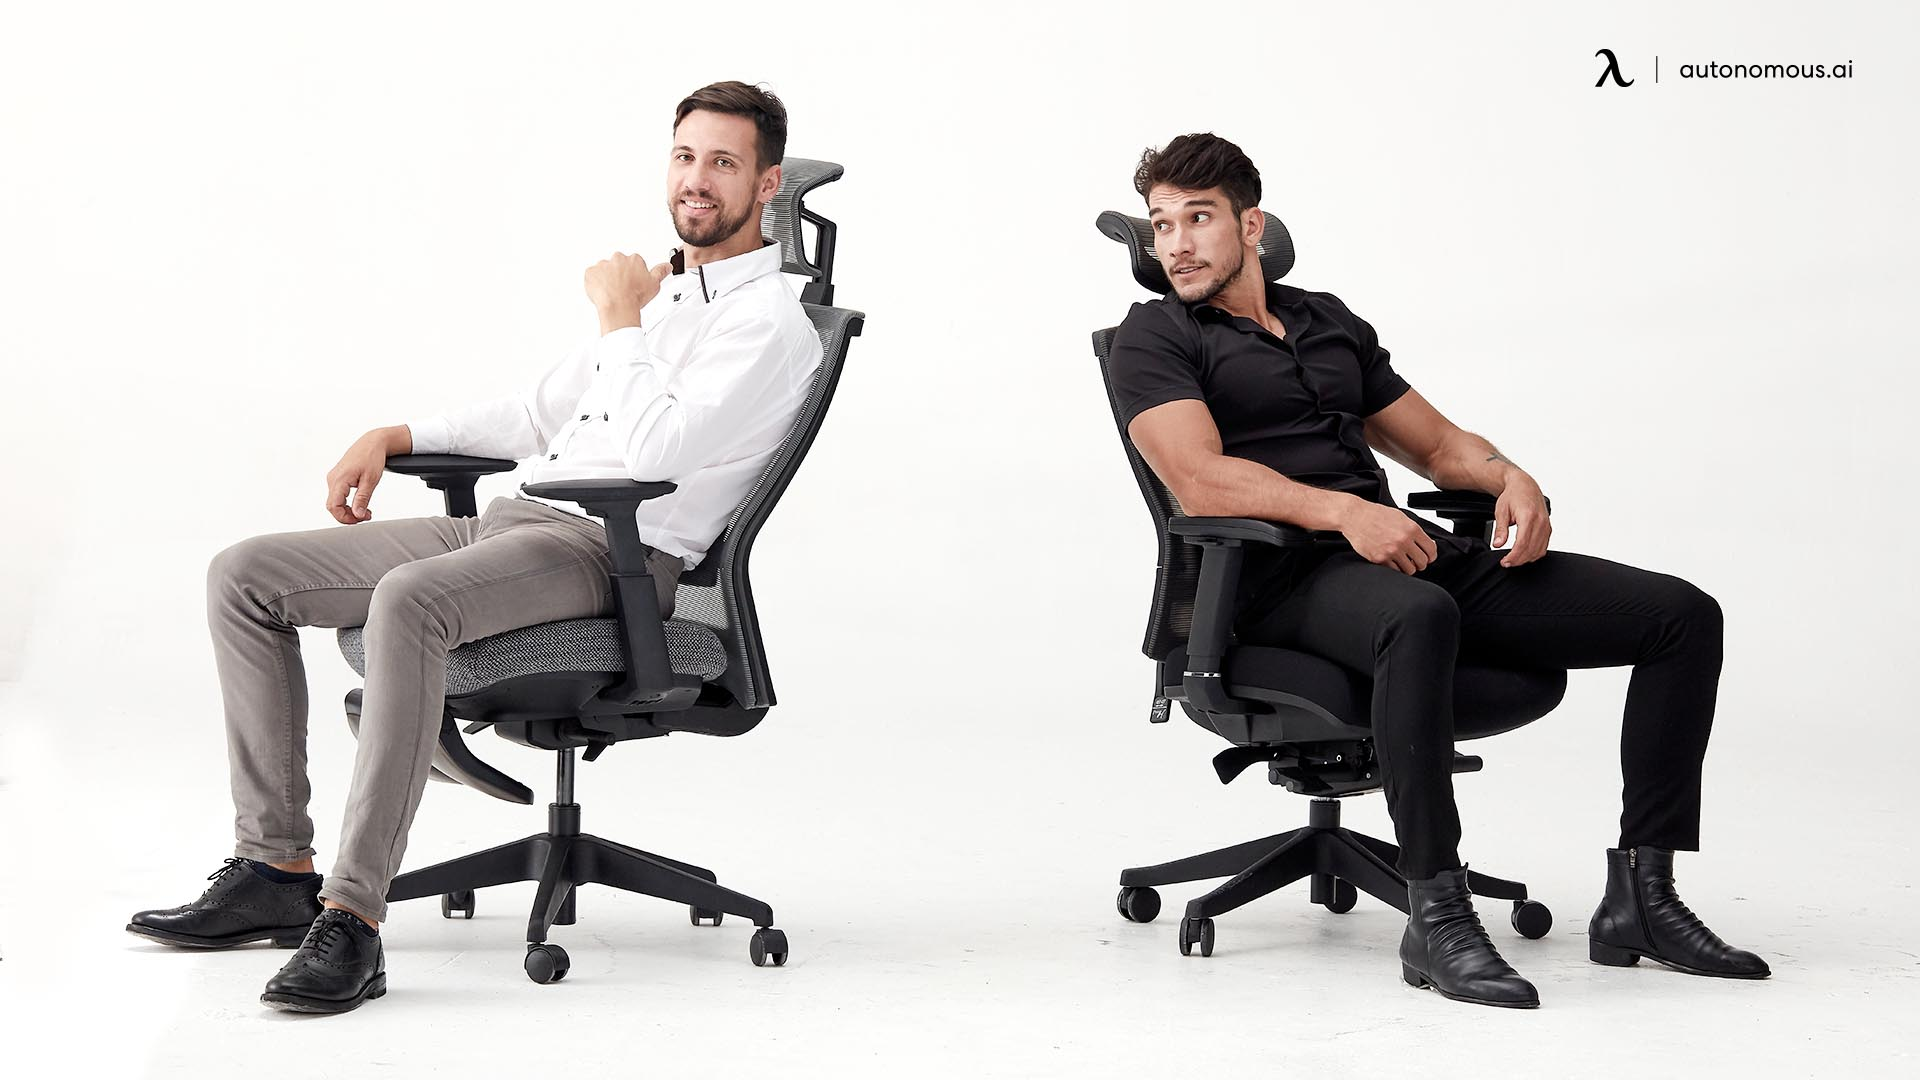 Taking care of your mesh office chair